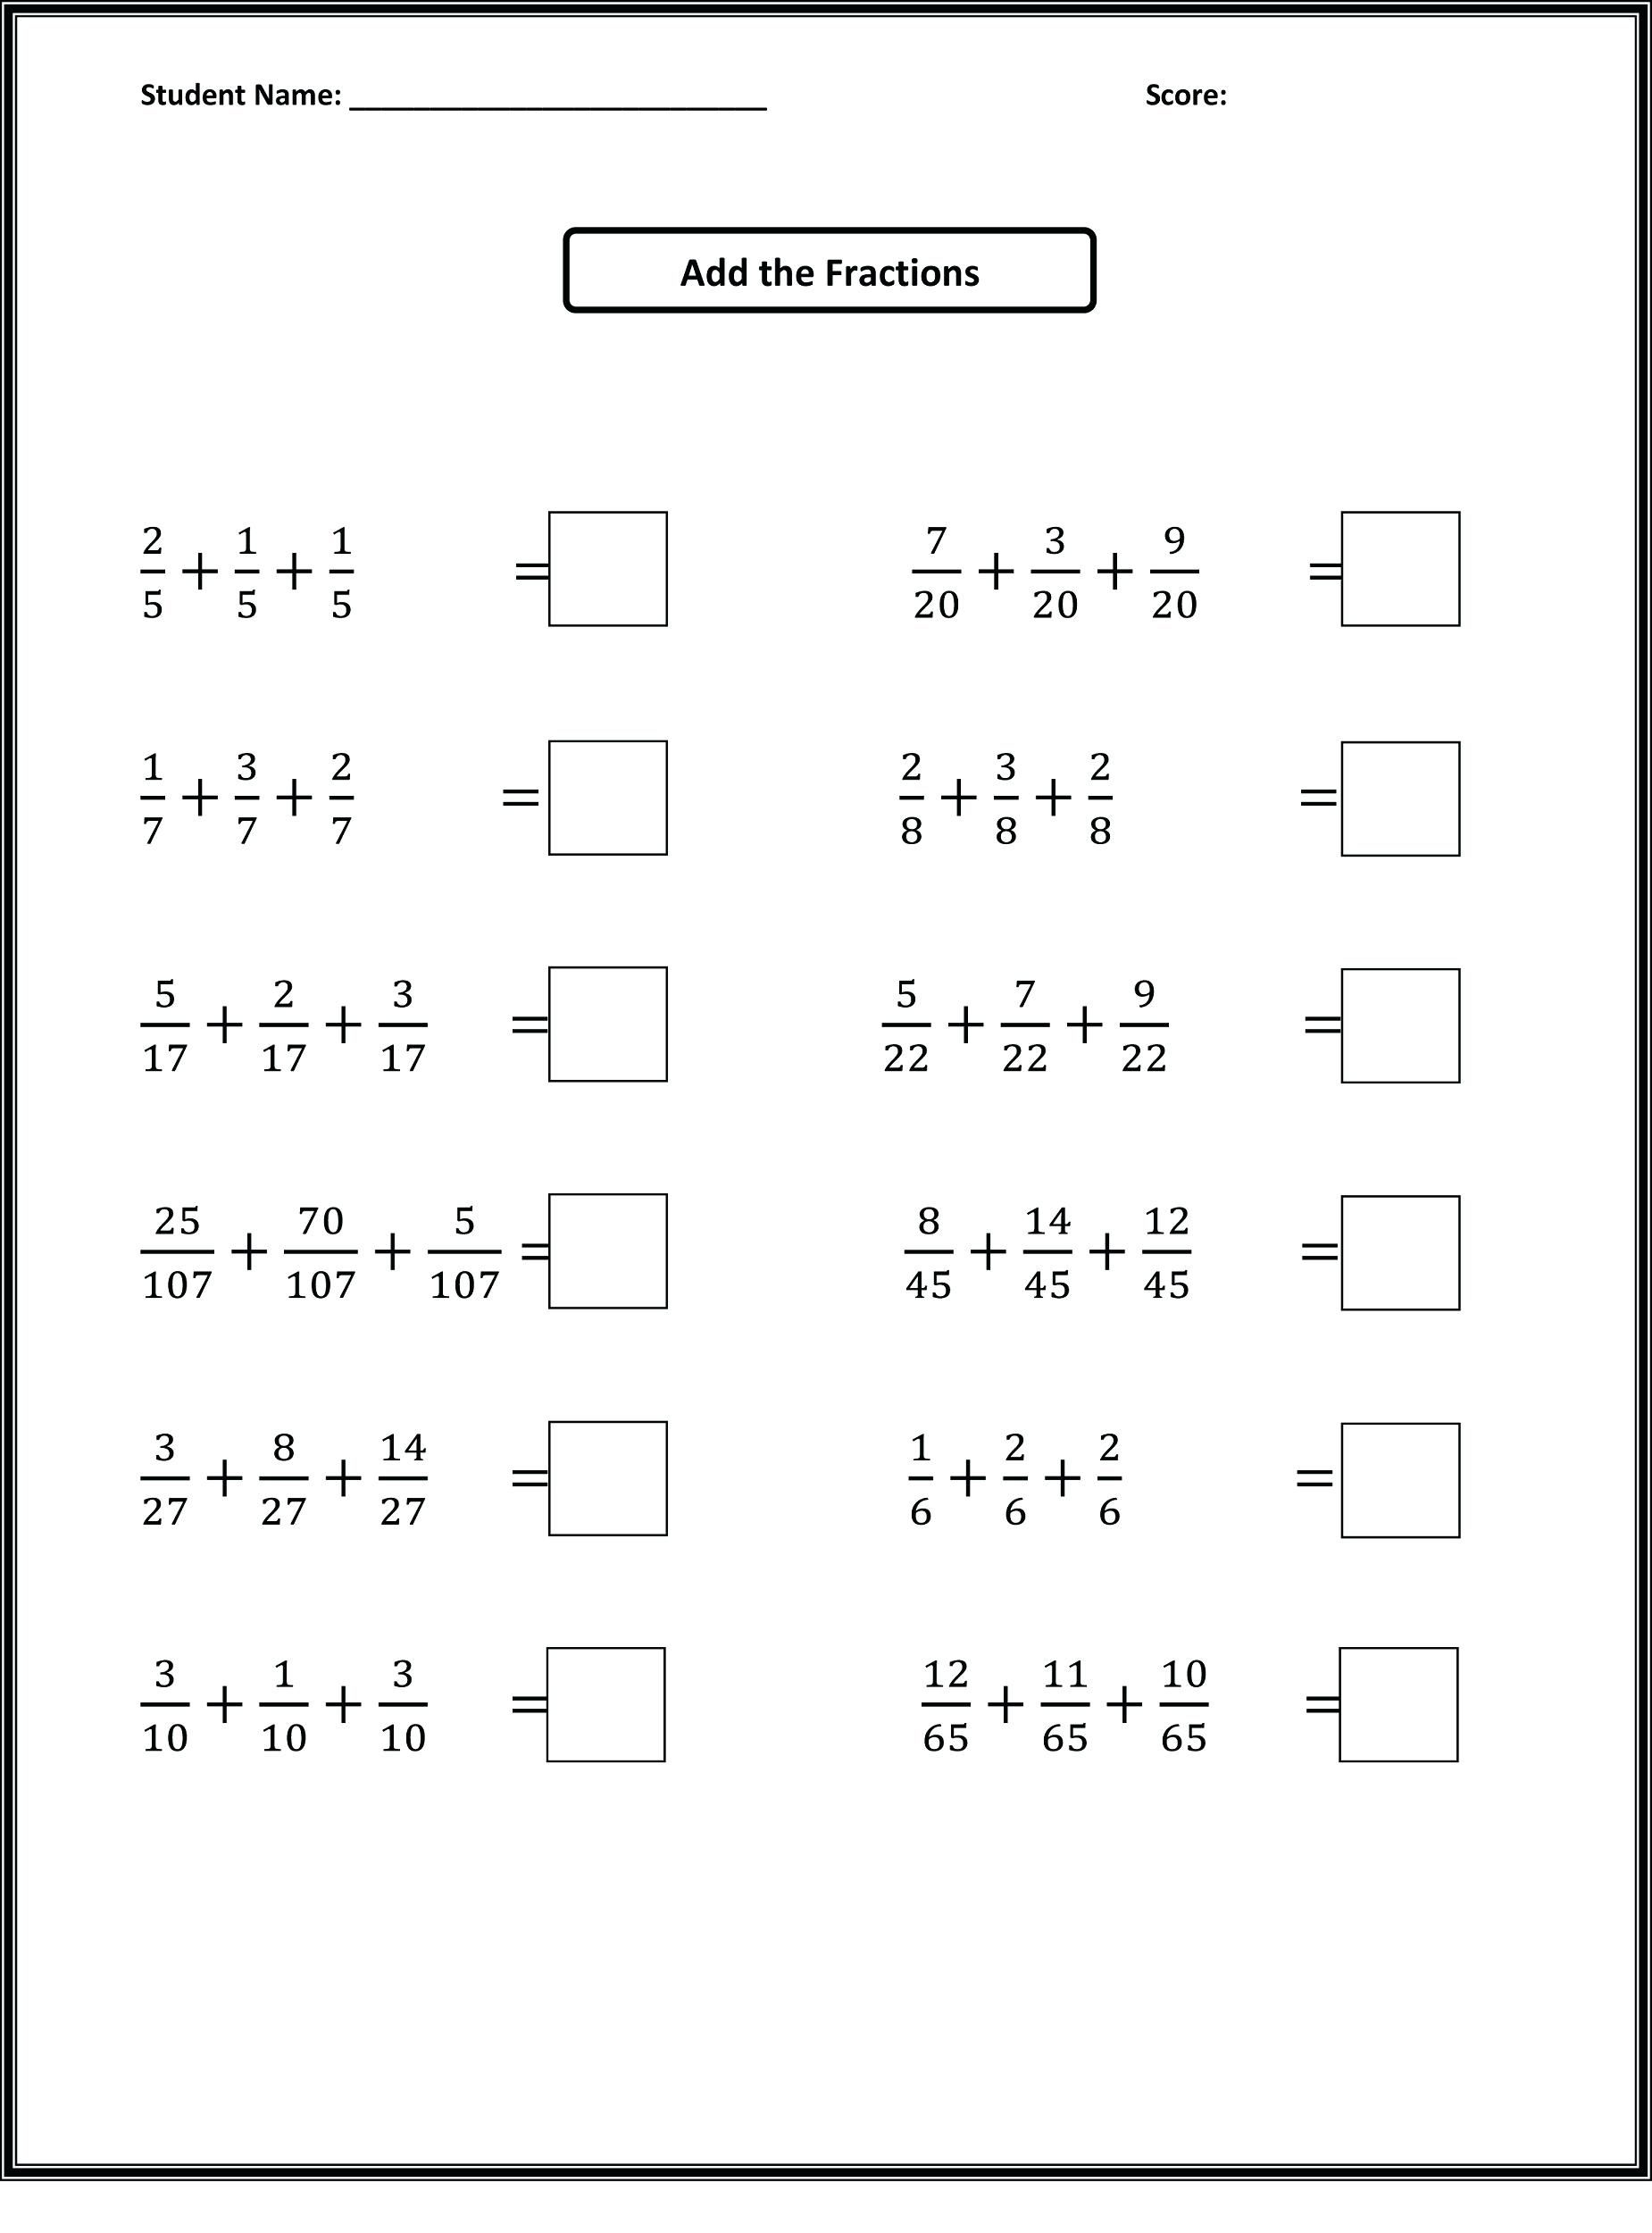 Maths Worksheets For Grade Cbse Practice Class Pdfth Word Problems Board 4 Australia Fractions Worksheets 4th Grade Math Worksheets 10th Grade Math Worksheets